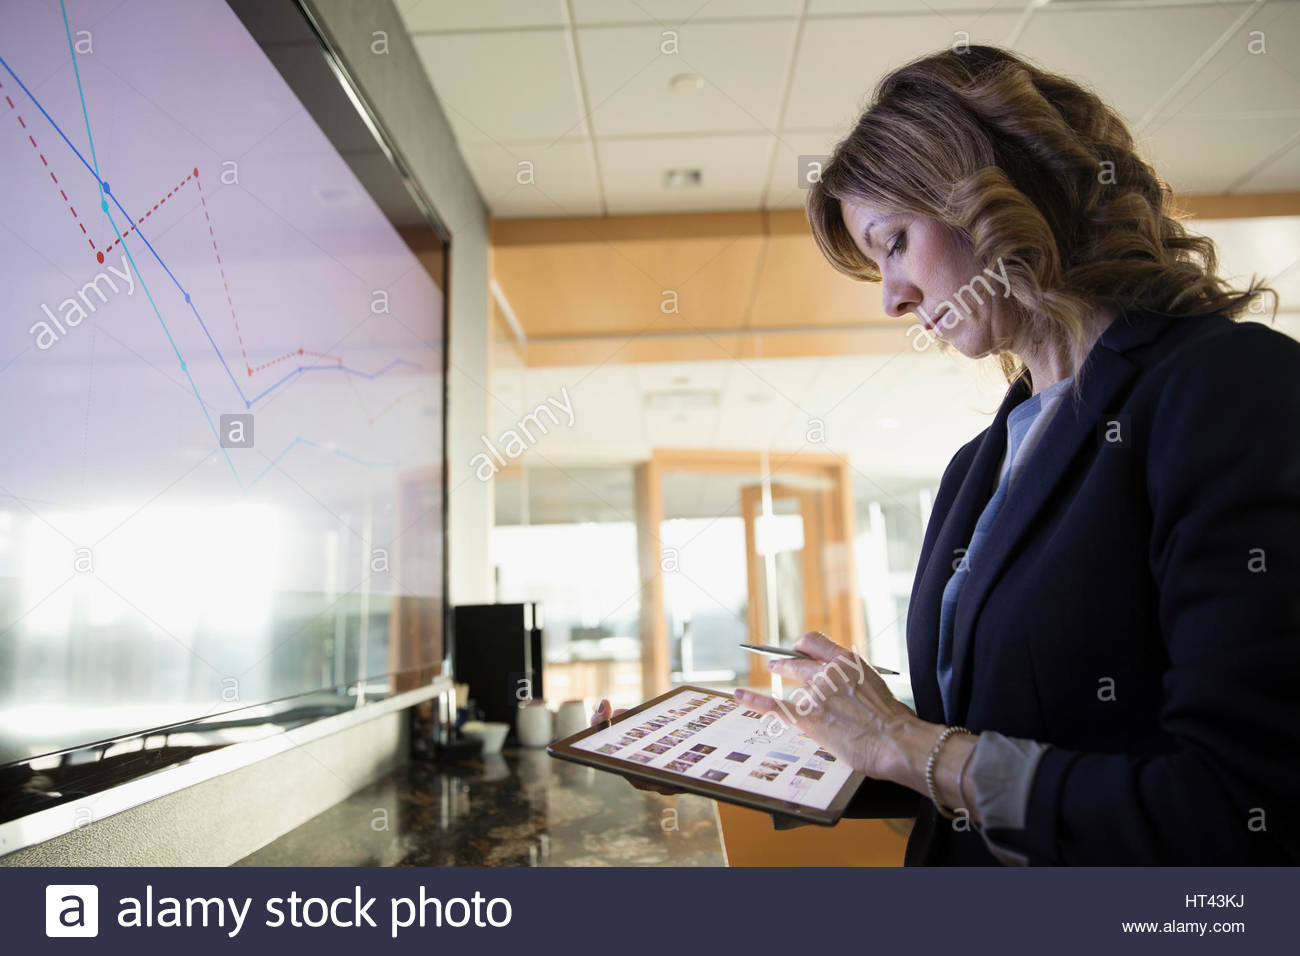 Businesswoman with digital tablet preparing audio visual presentation in conference room - Stock Image